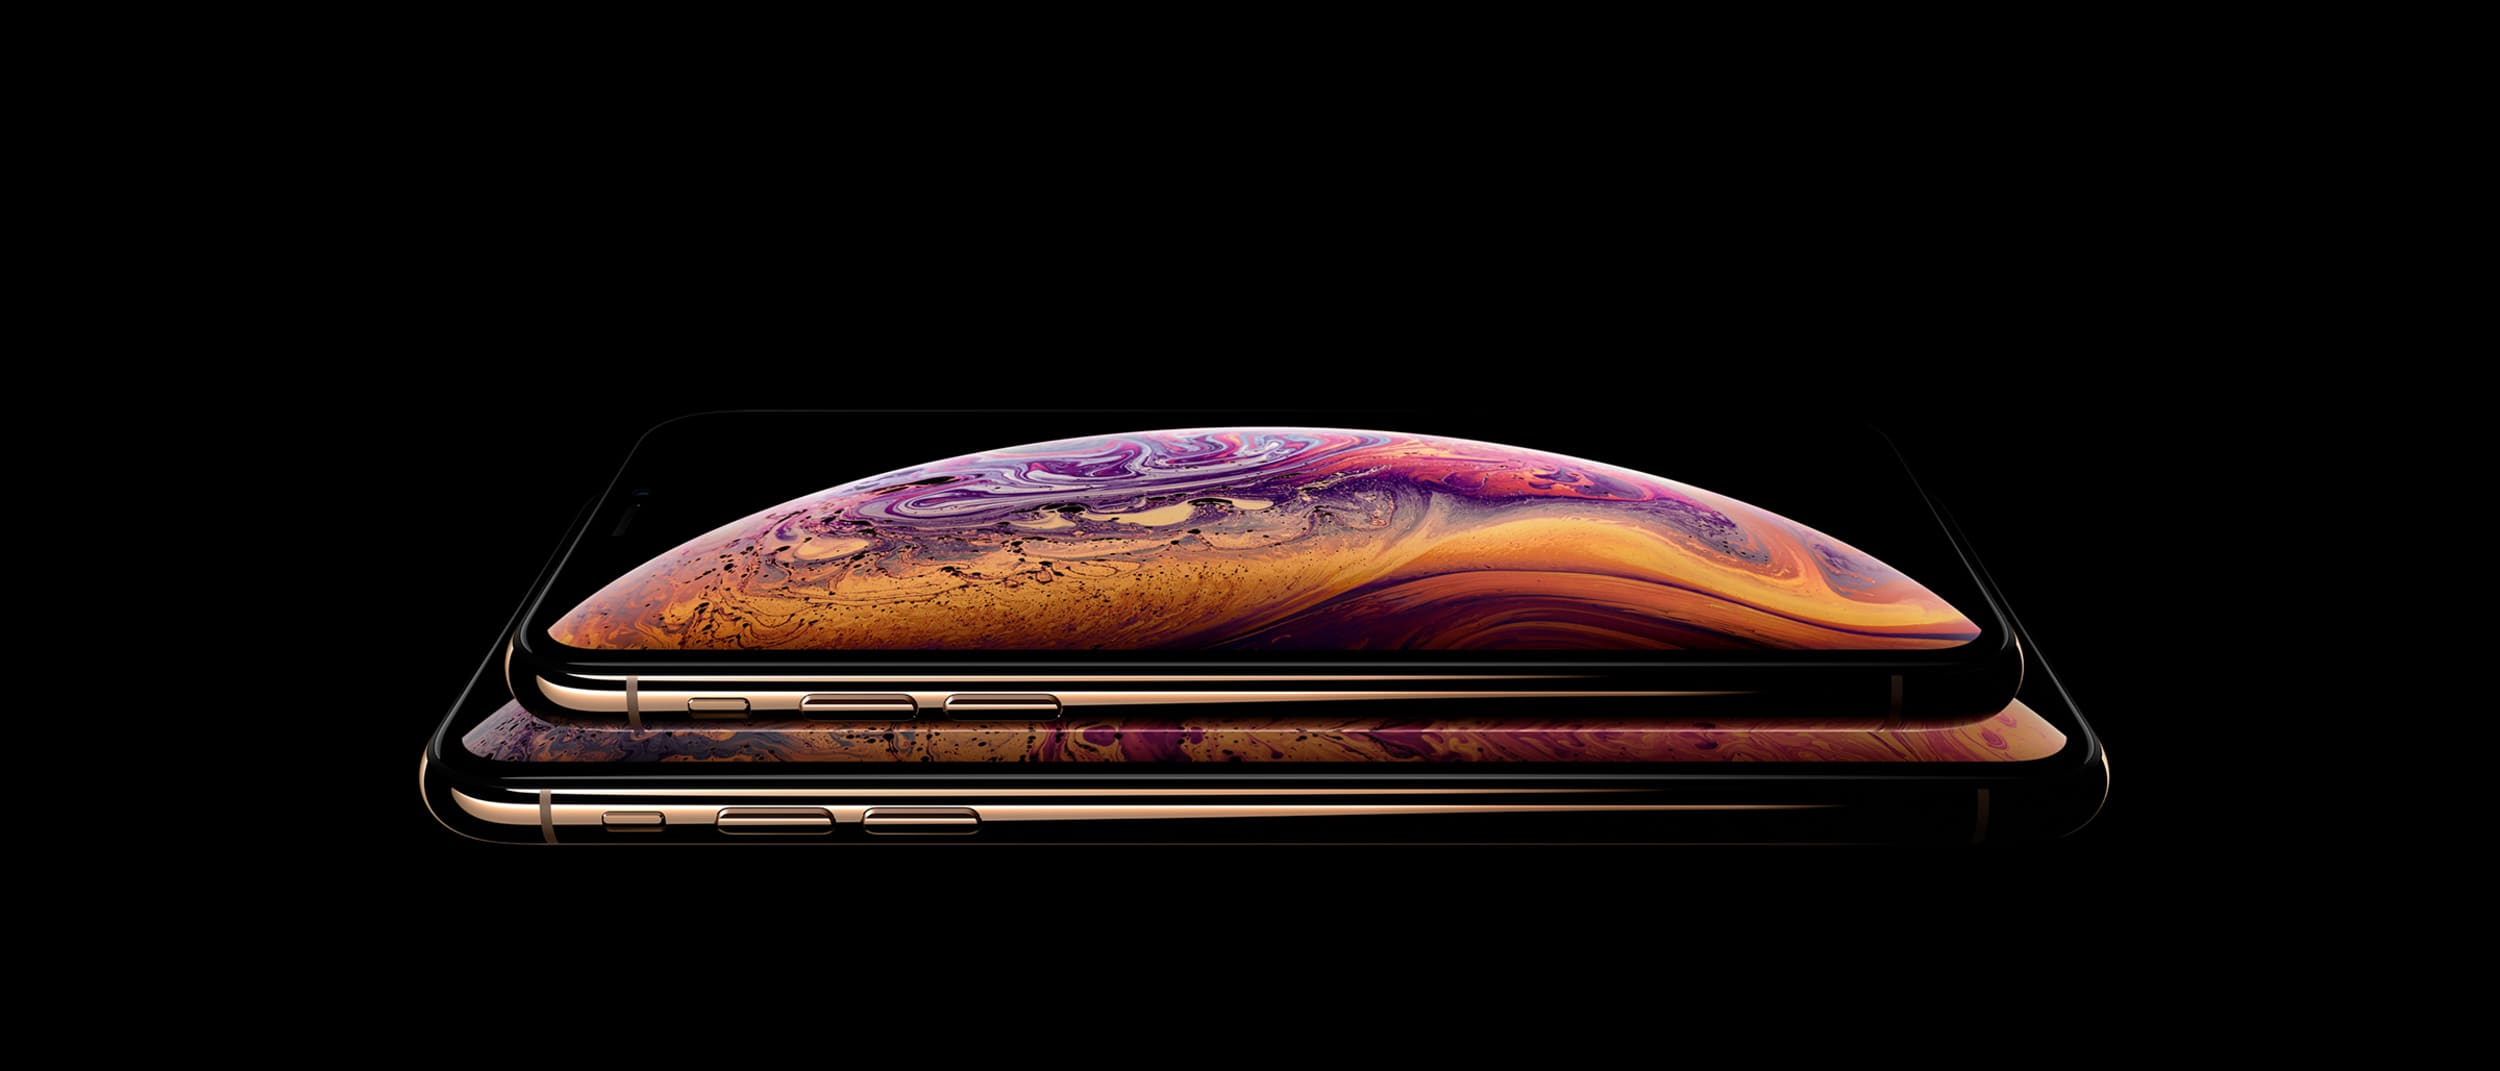 Apple: introducing the iPhone XS